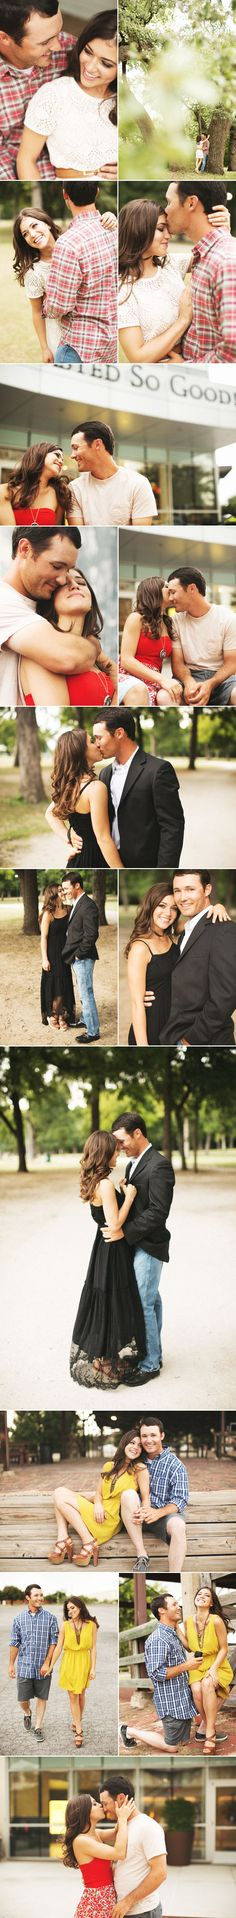 engagement photo ideas. Exactly what I'm looking for. Who wants photos of u looking ugly with your hair half done and your makeup 3/4 done in your engagement album?!